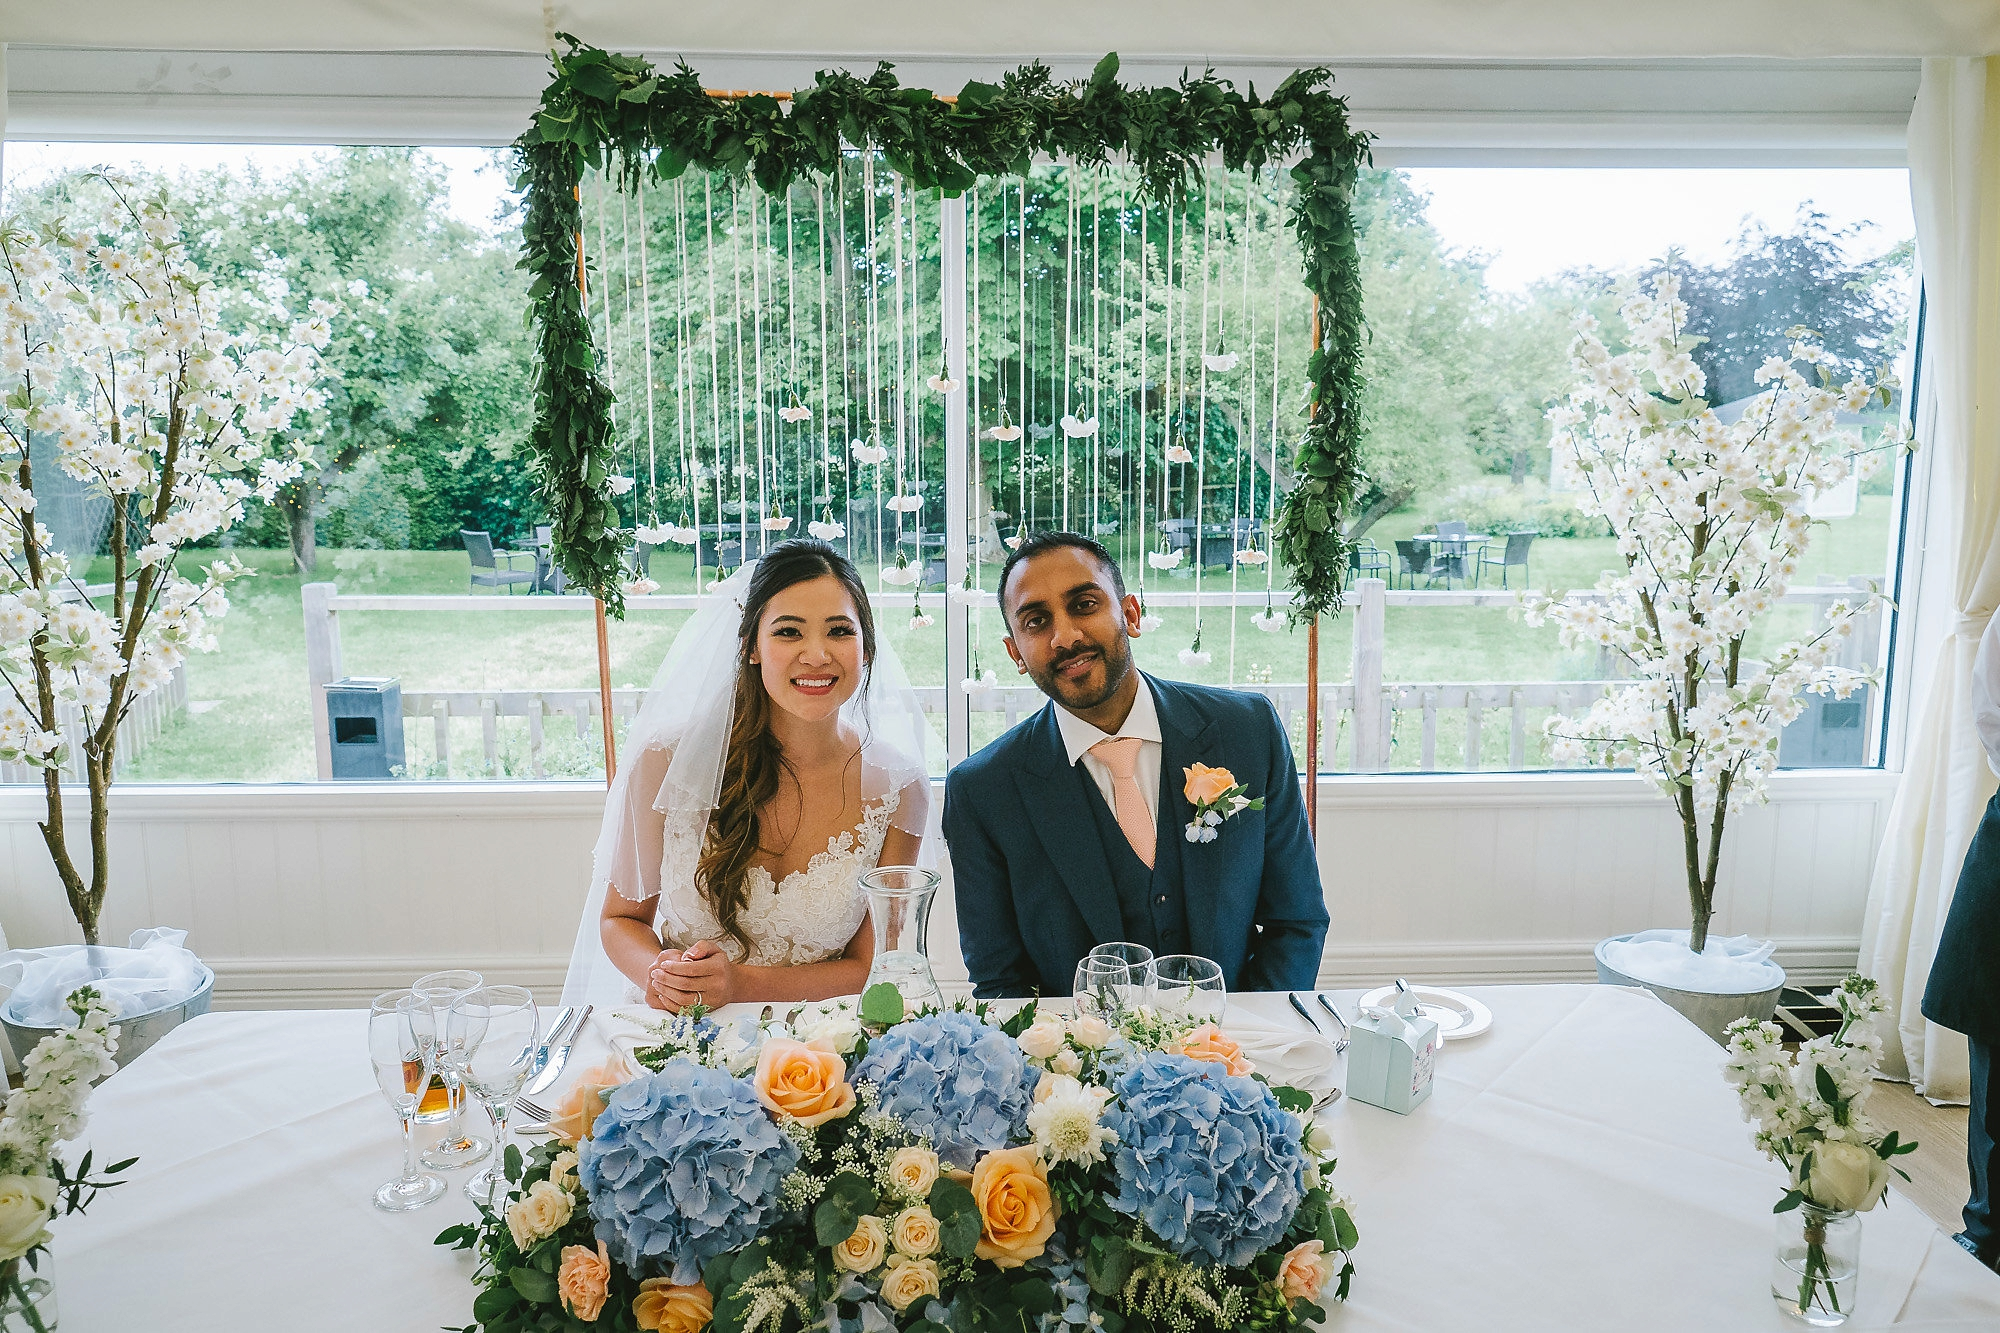 Sweetheart table at Essex garden wedding with peach and blue floral arrangement and hanging carnations on copper frame